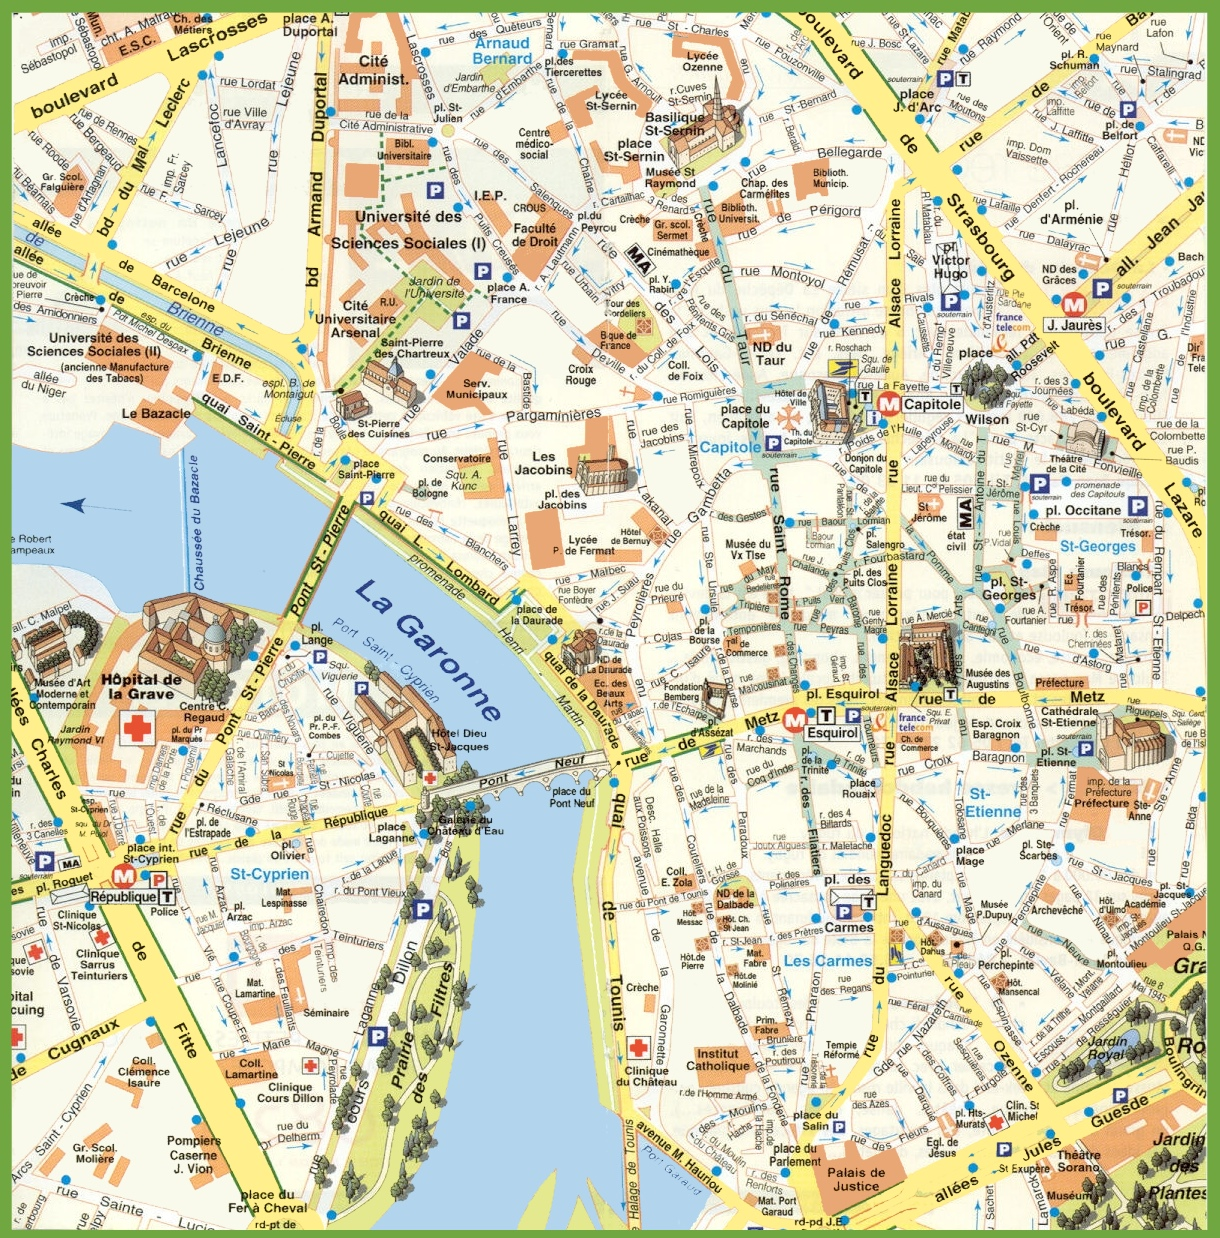 Toulouse city center map